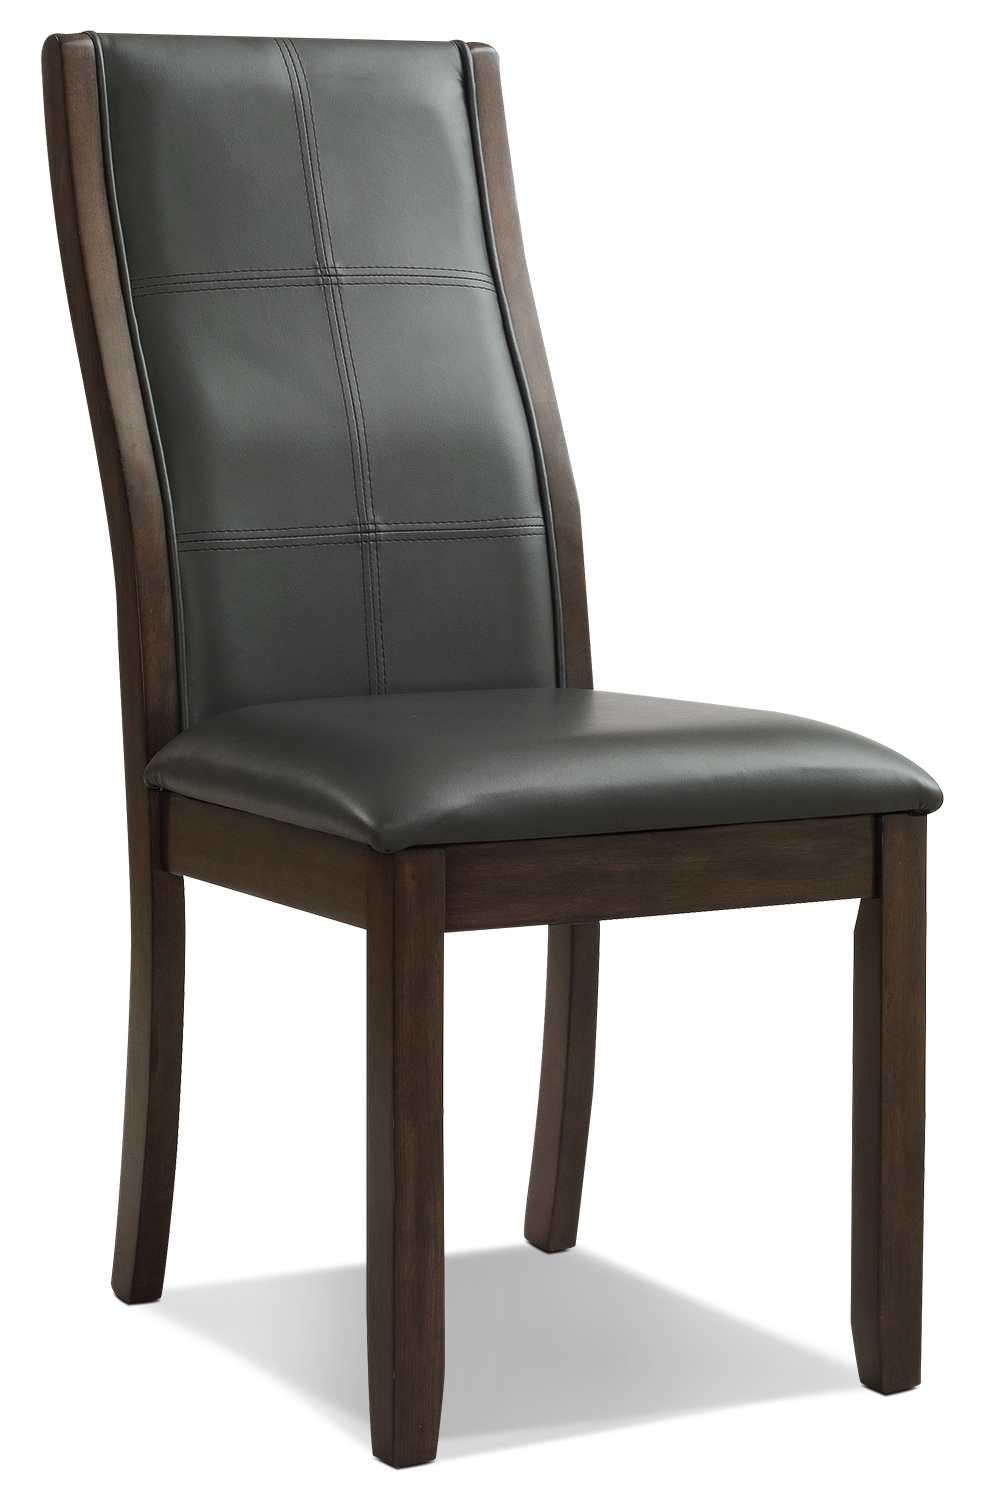 Dining Room Furniture - Tyler Dining Chair - Grey